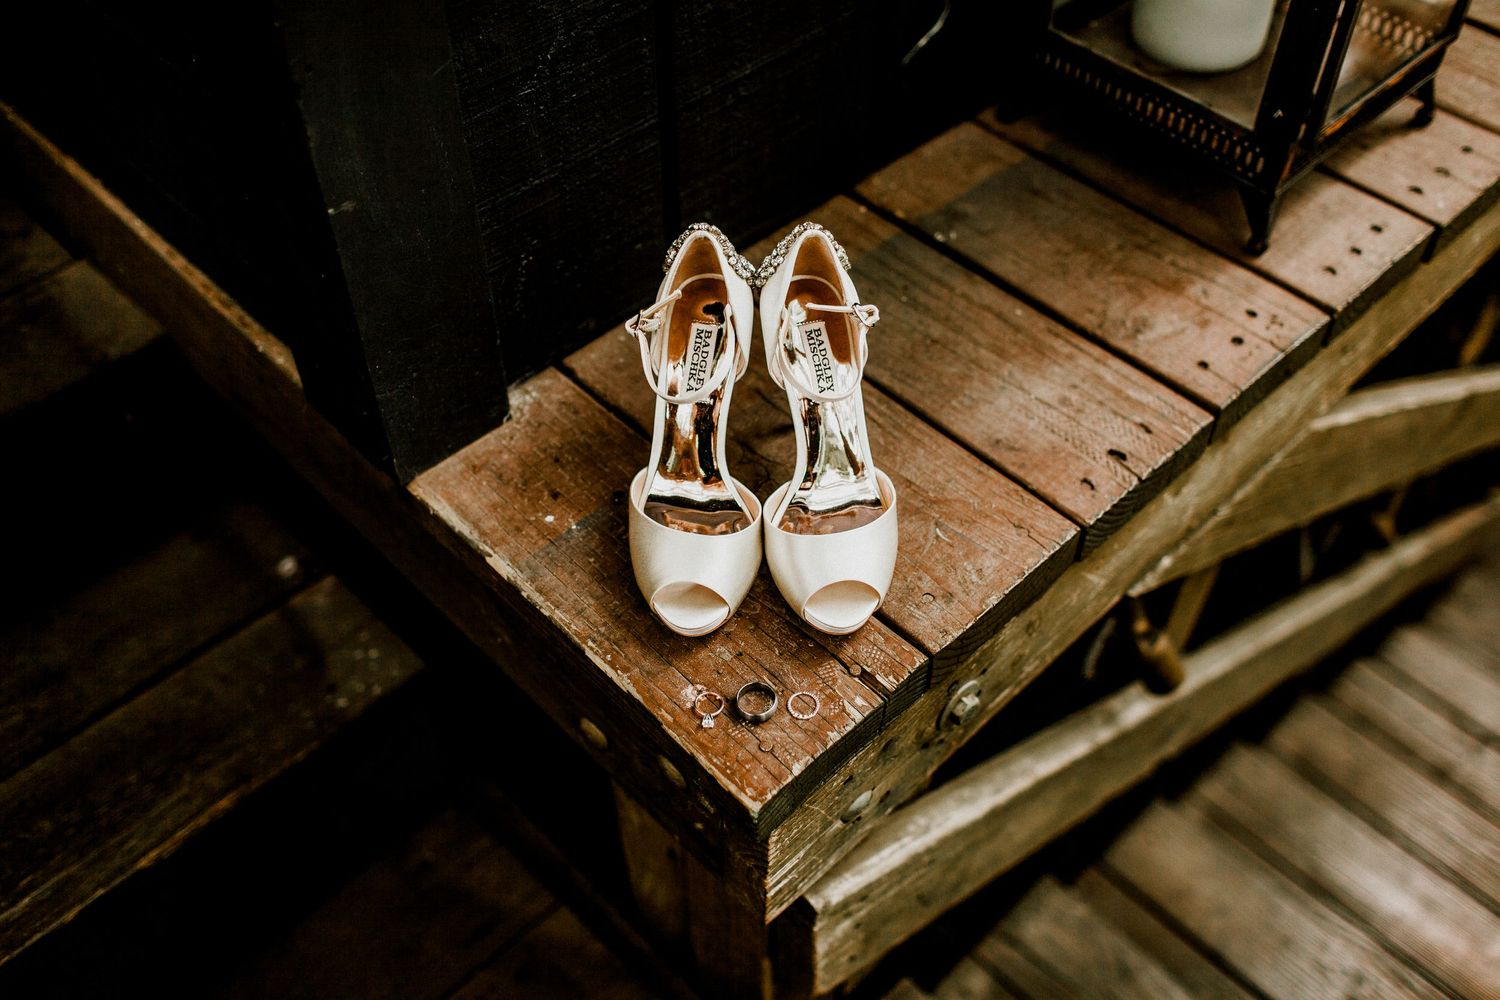 wedding day details shoes and rings